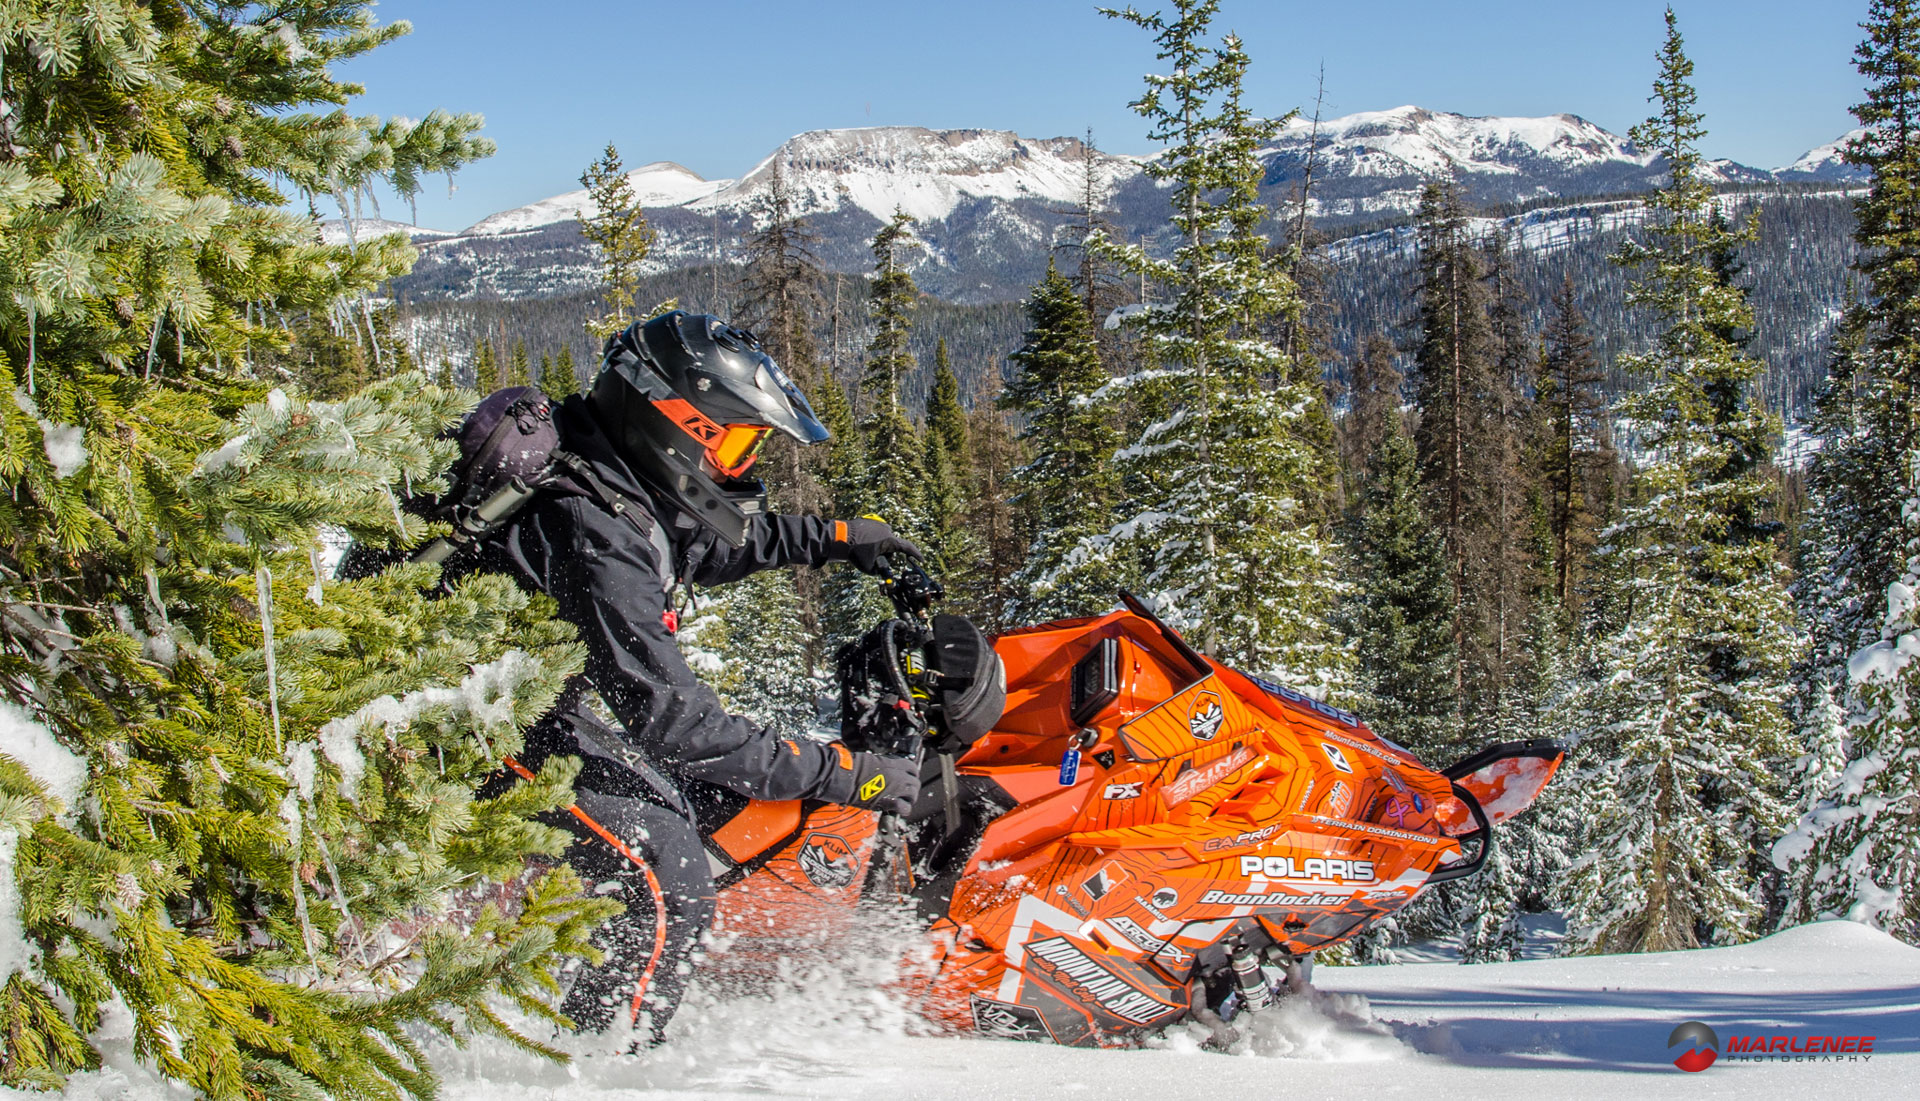 2016 Klim Catalog - Matt Entz